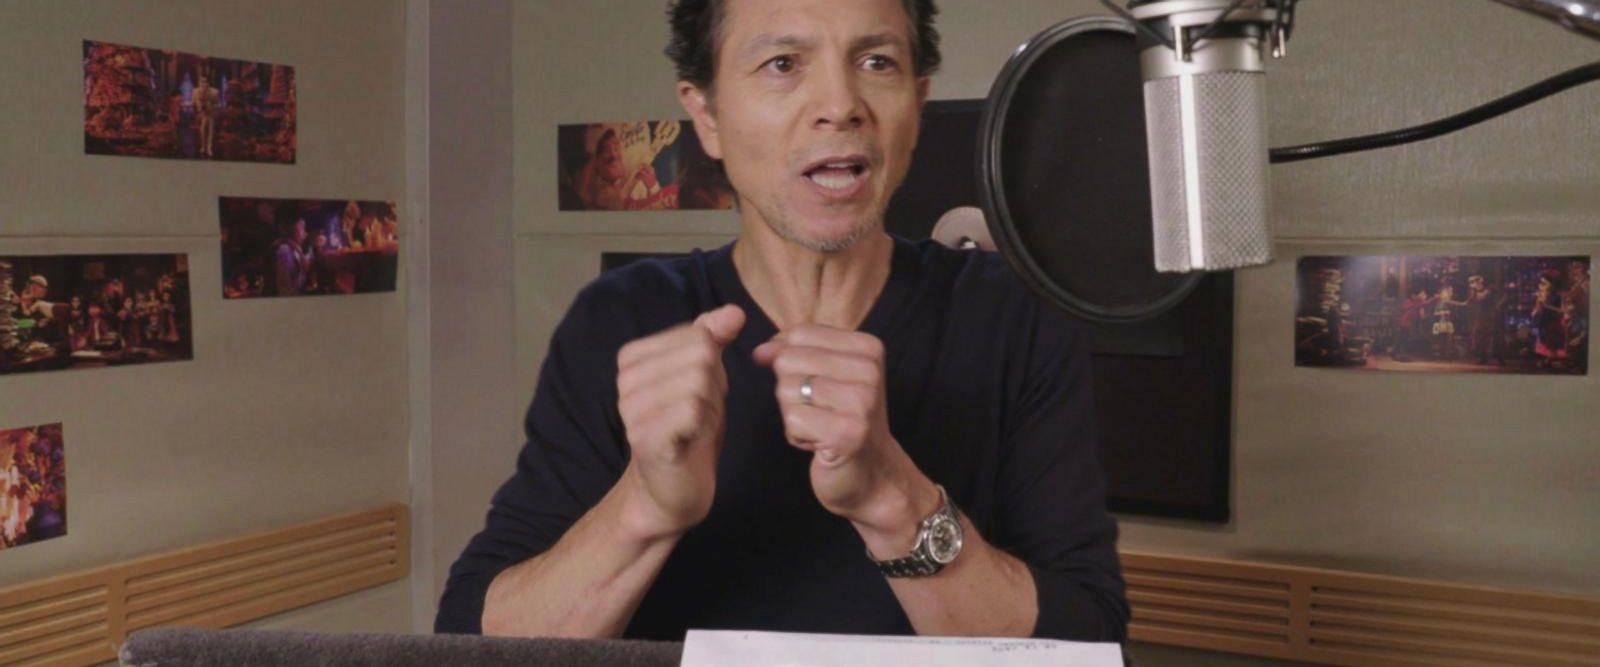 VIDEO: Benjamin Bratt says his new film 'celebrates this idea that we all come from somewhere'